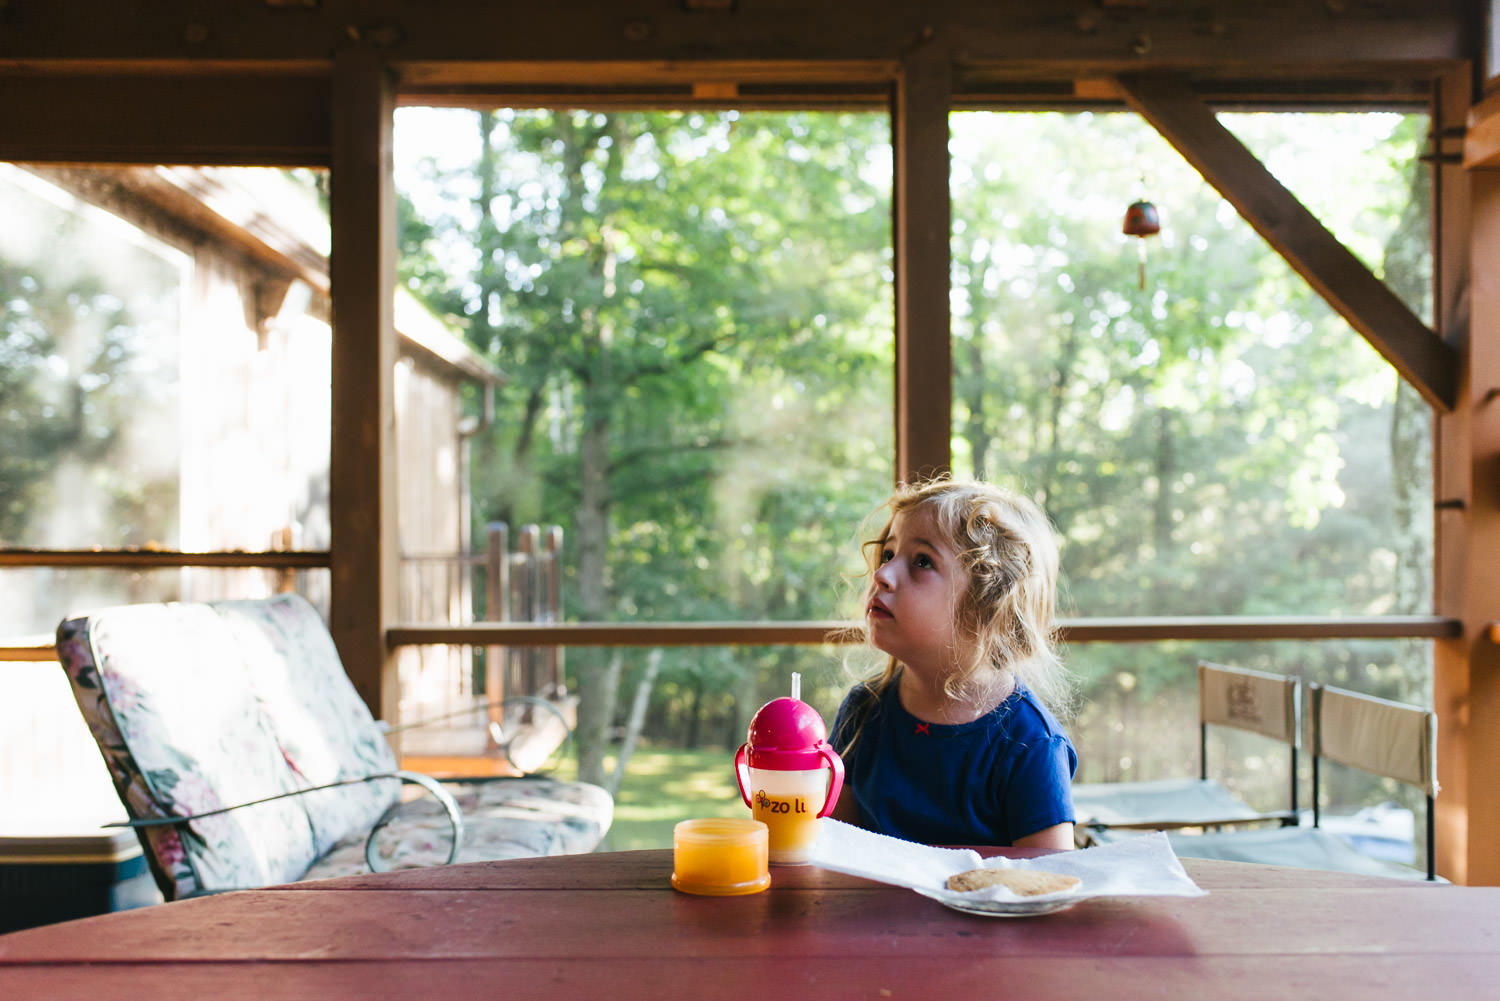 A little girl eats breakfast on a screened-in porch.